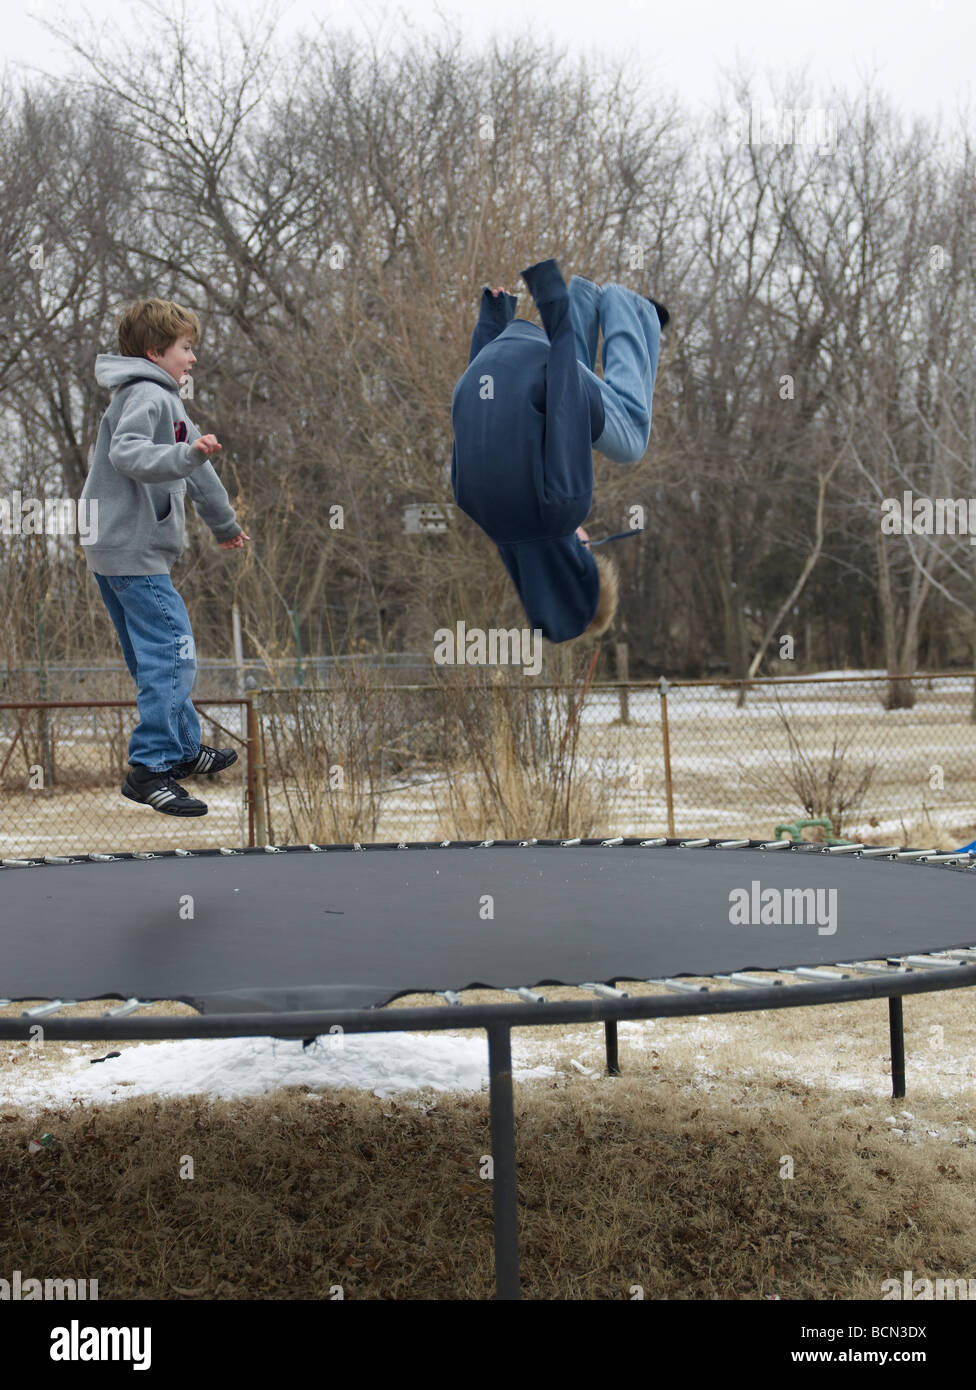 Two Children Jumping on Trampoline Stock Photo